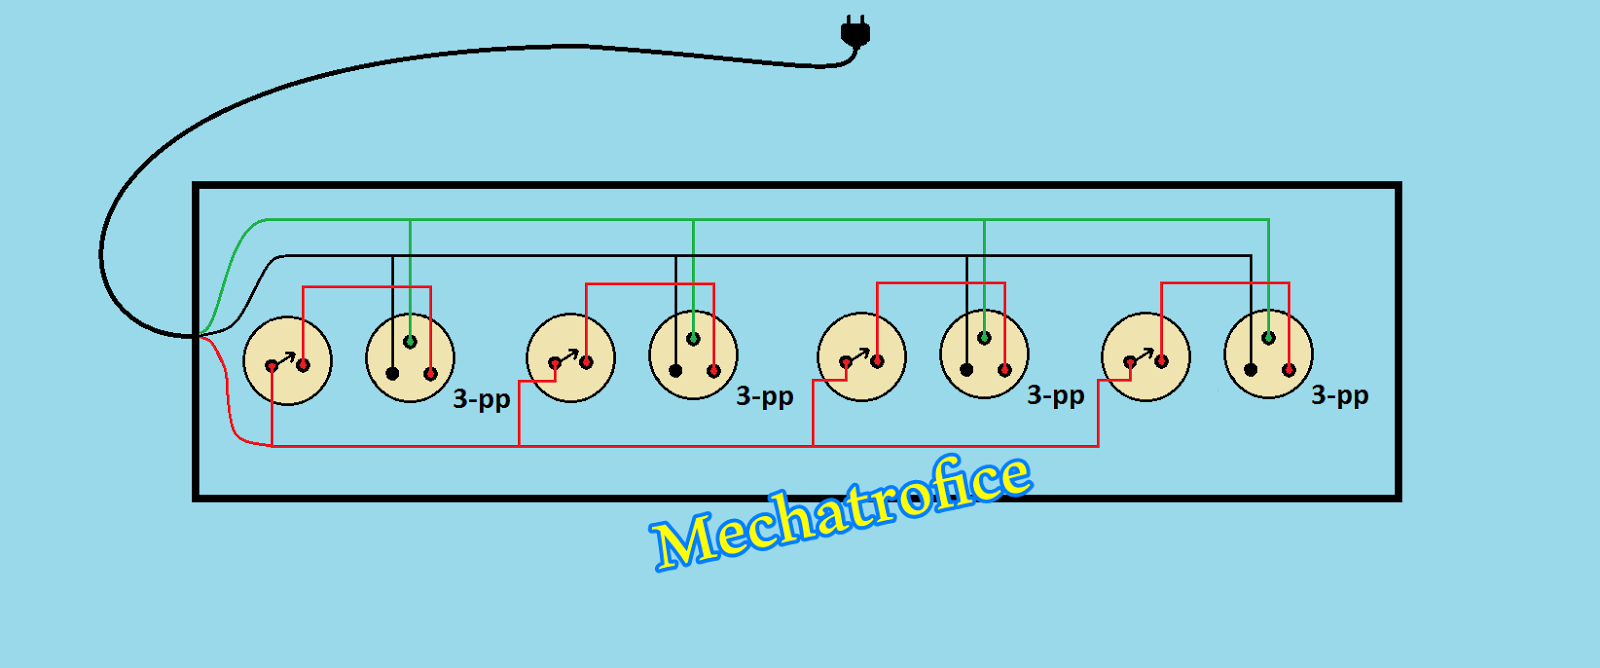 hight resolution of extension cord plug wiring diagram